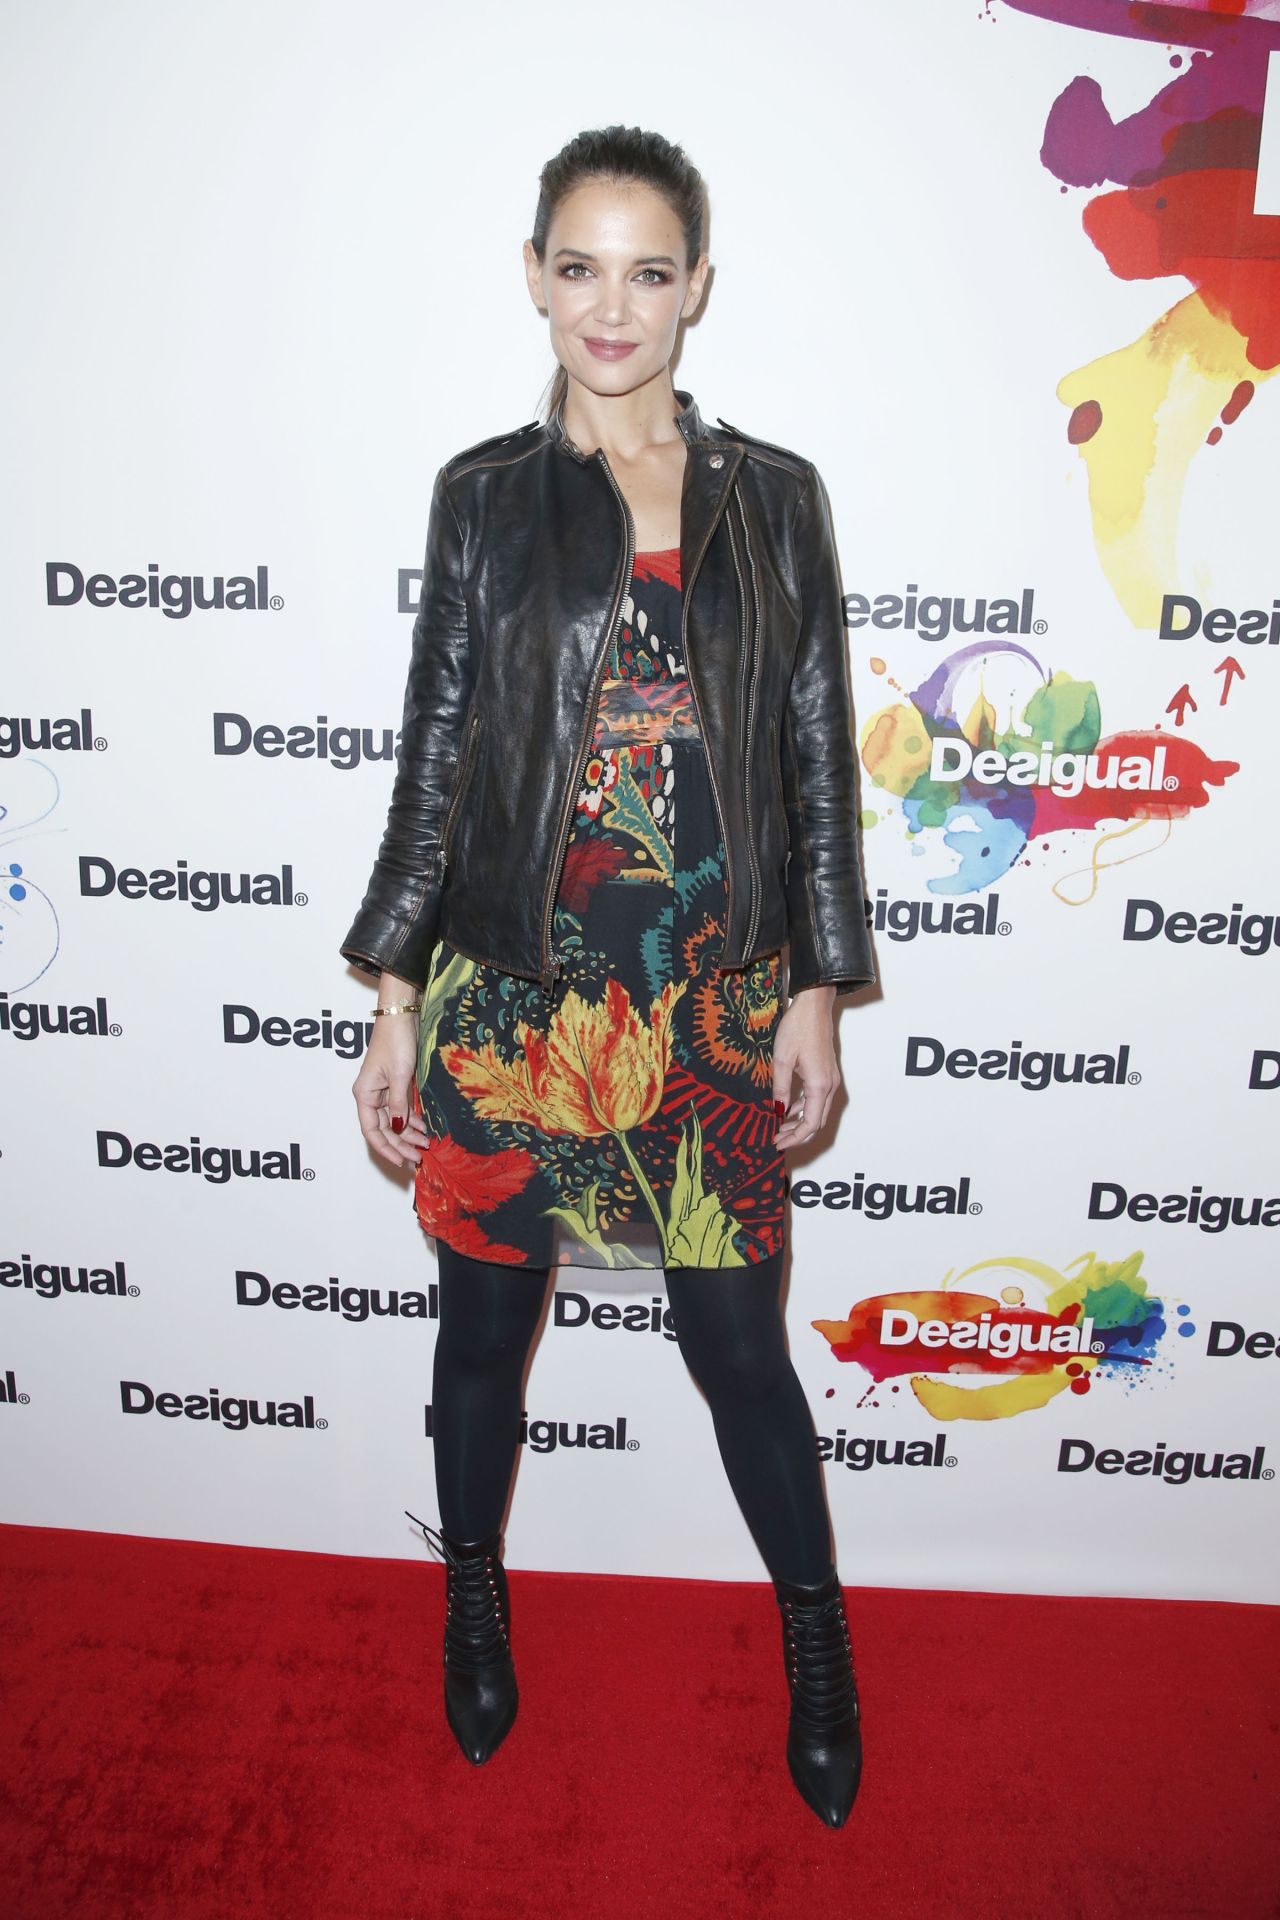 Katie Holmes - Desigual Fashion Show in New York City, Feb. 2015